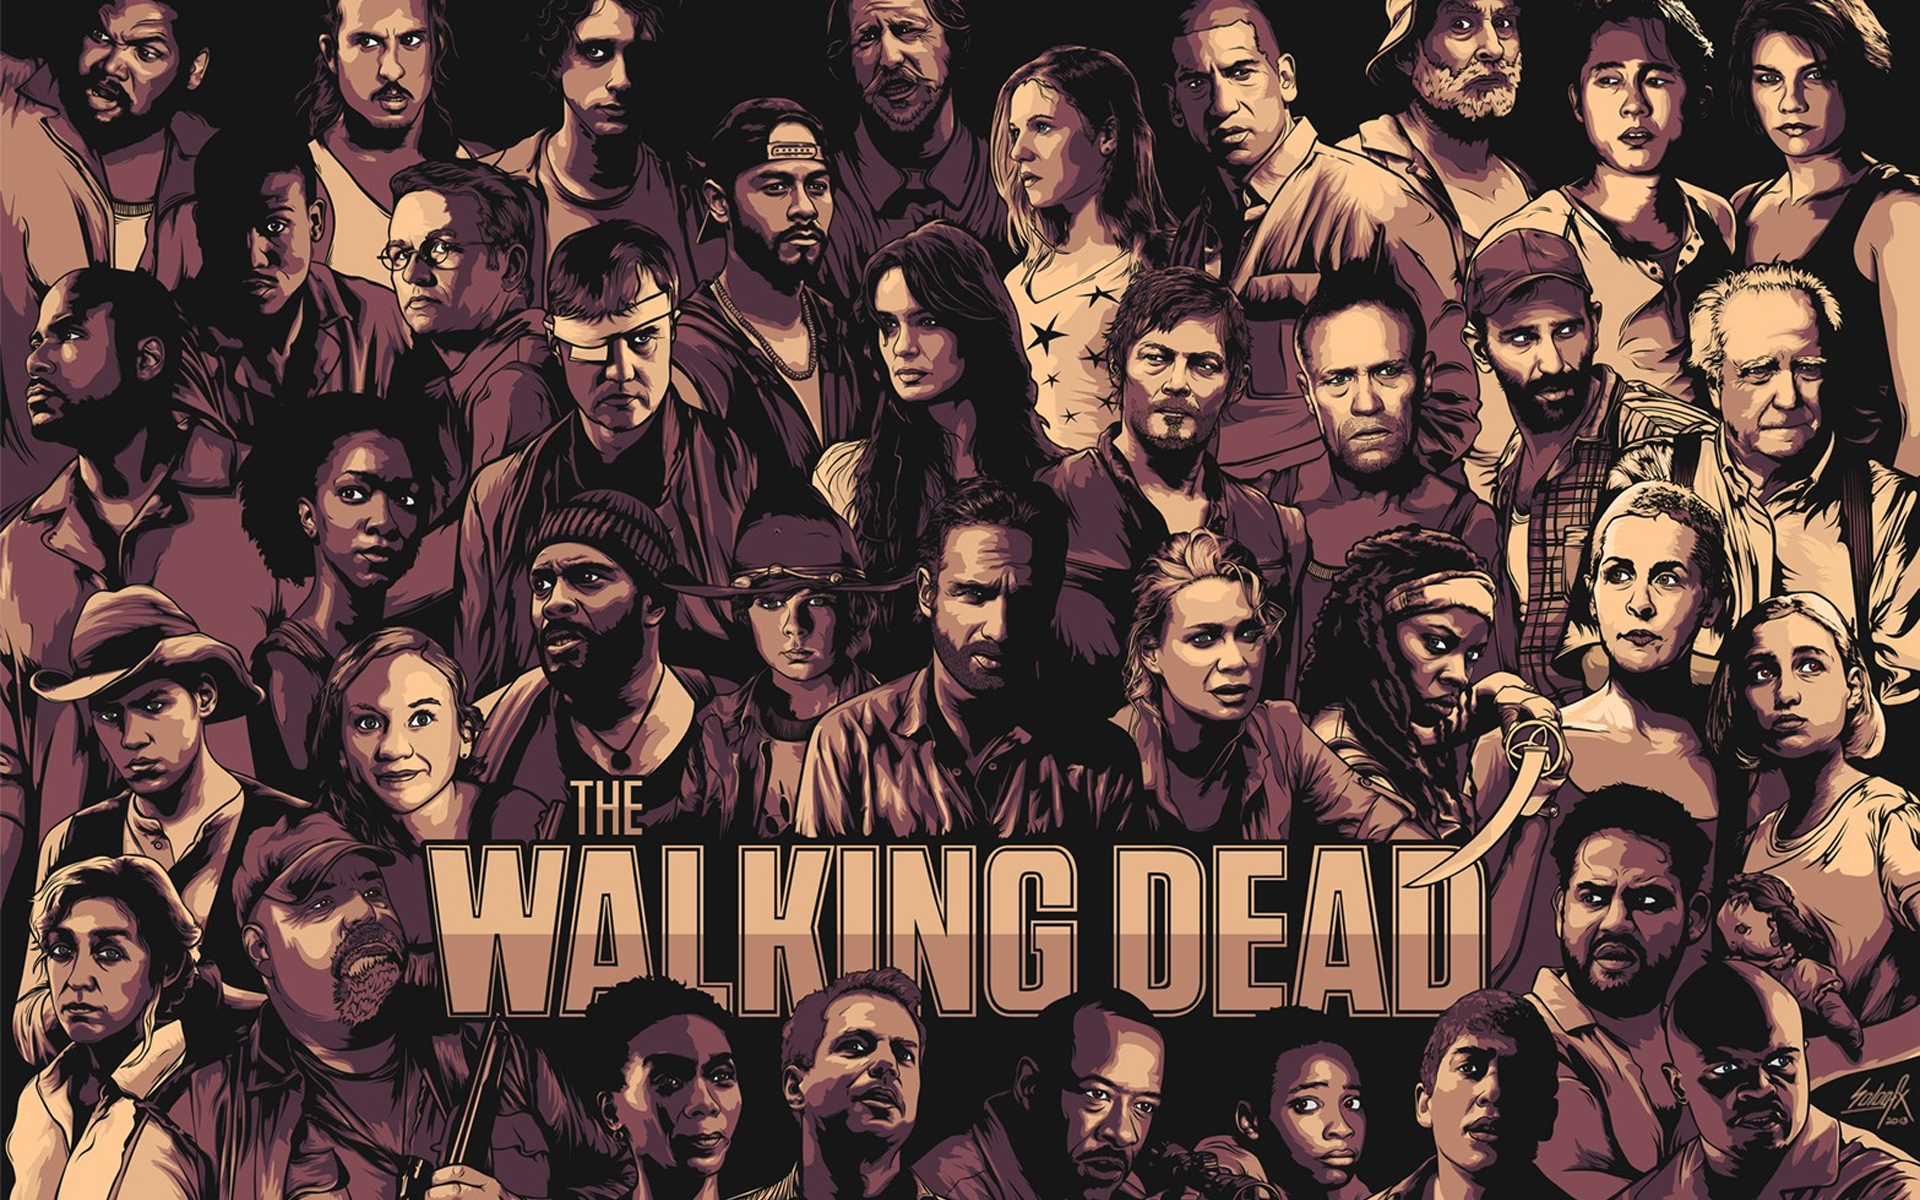 The Walking Dead Cool Poster for 1920 x 1200 widescreen resolution